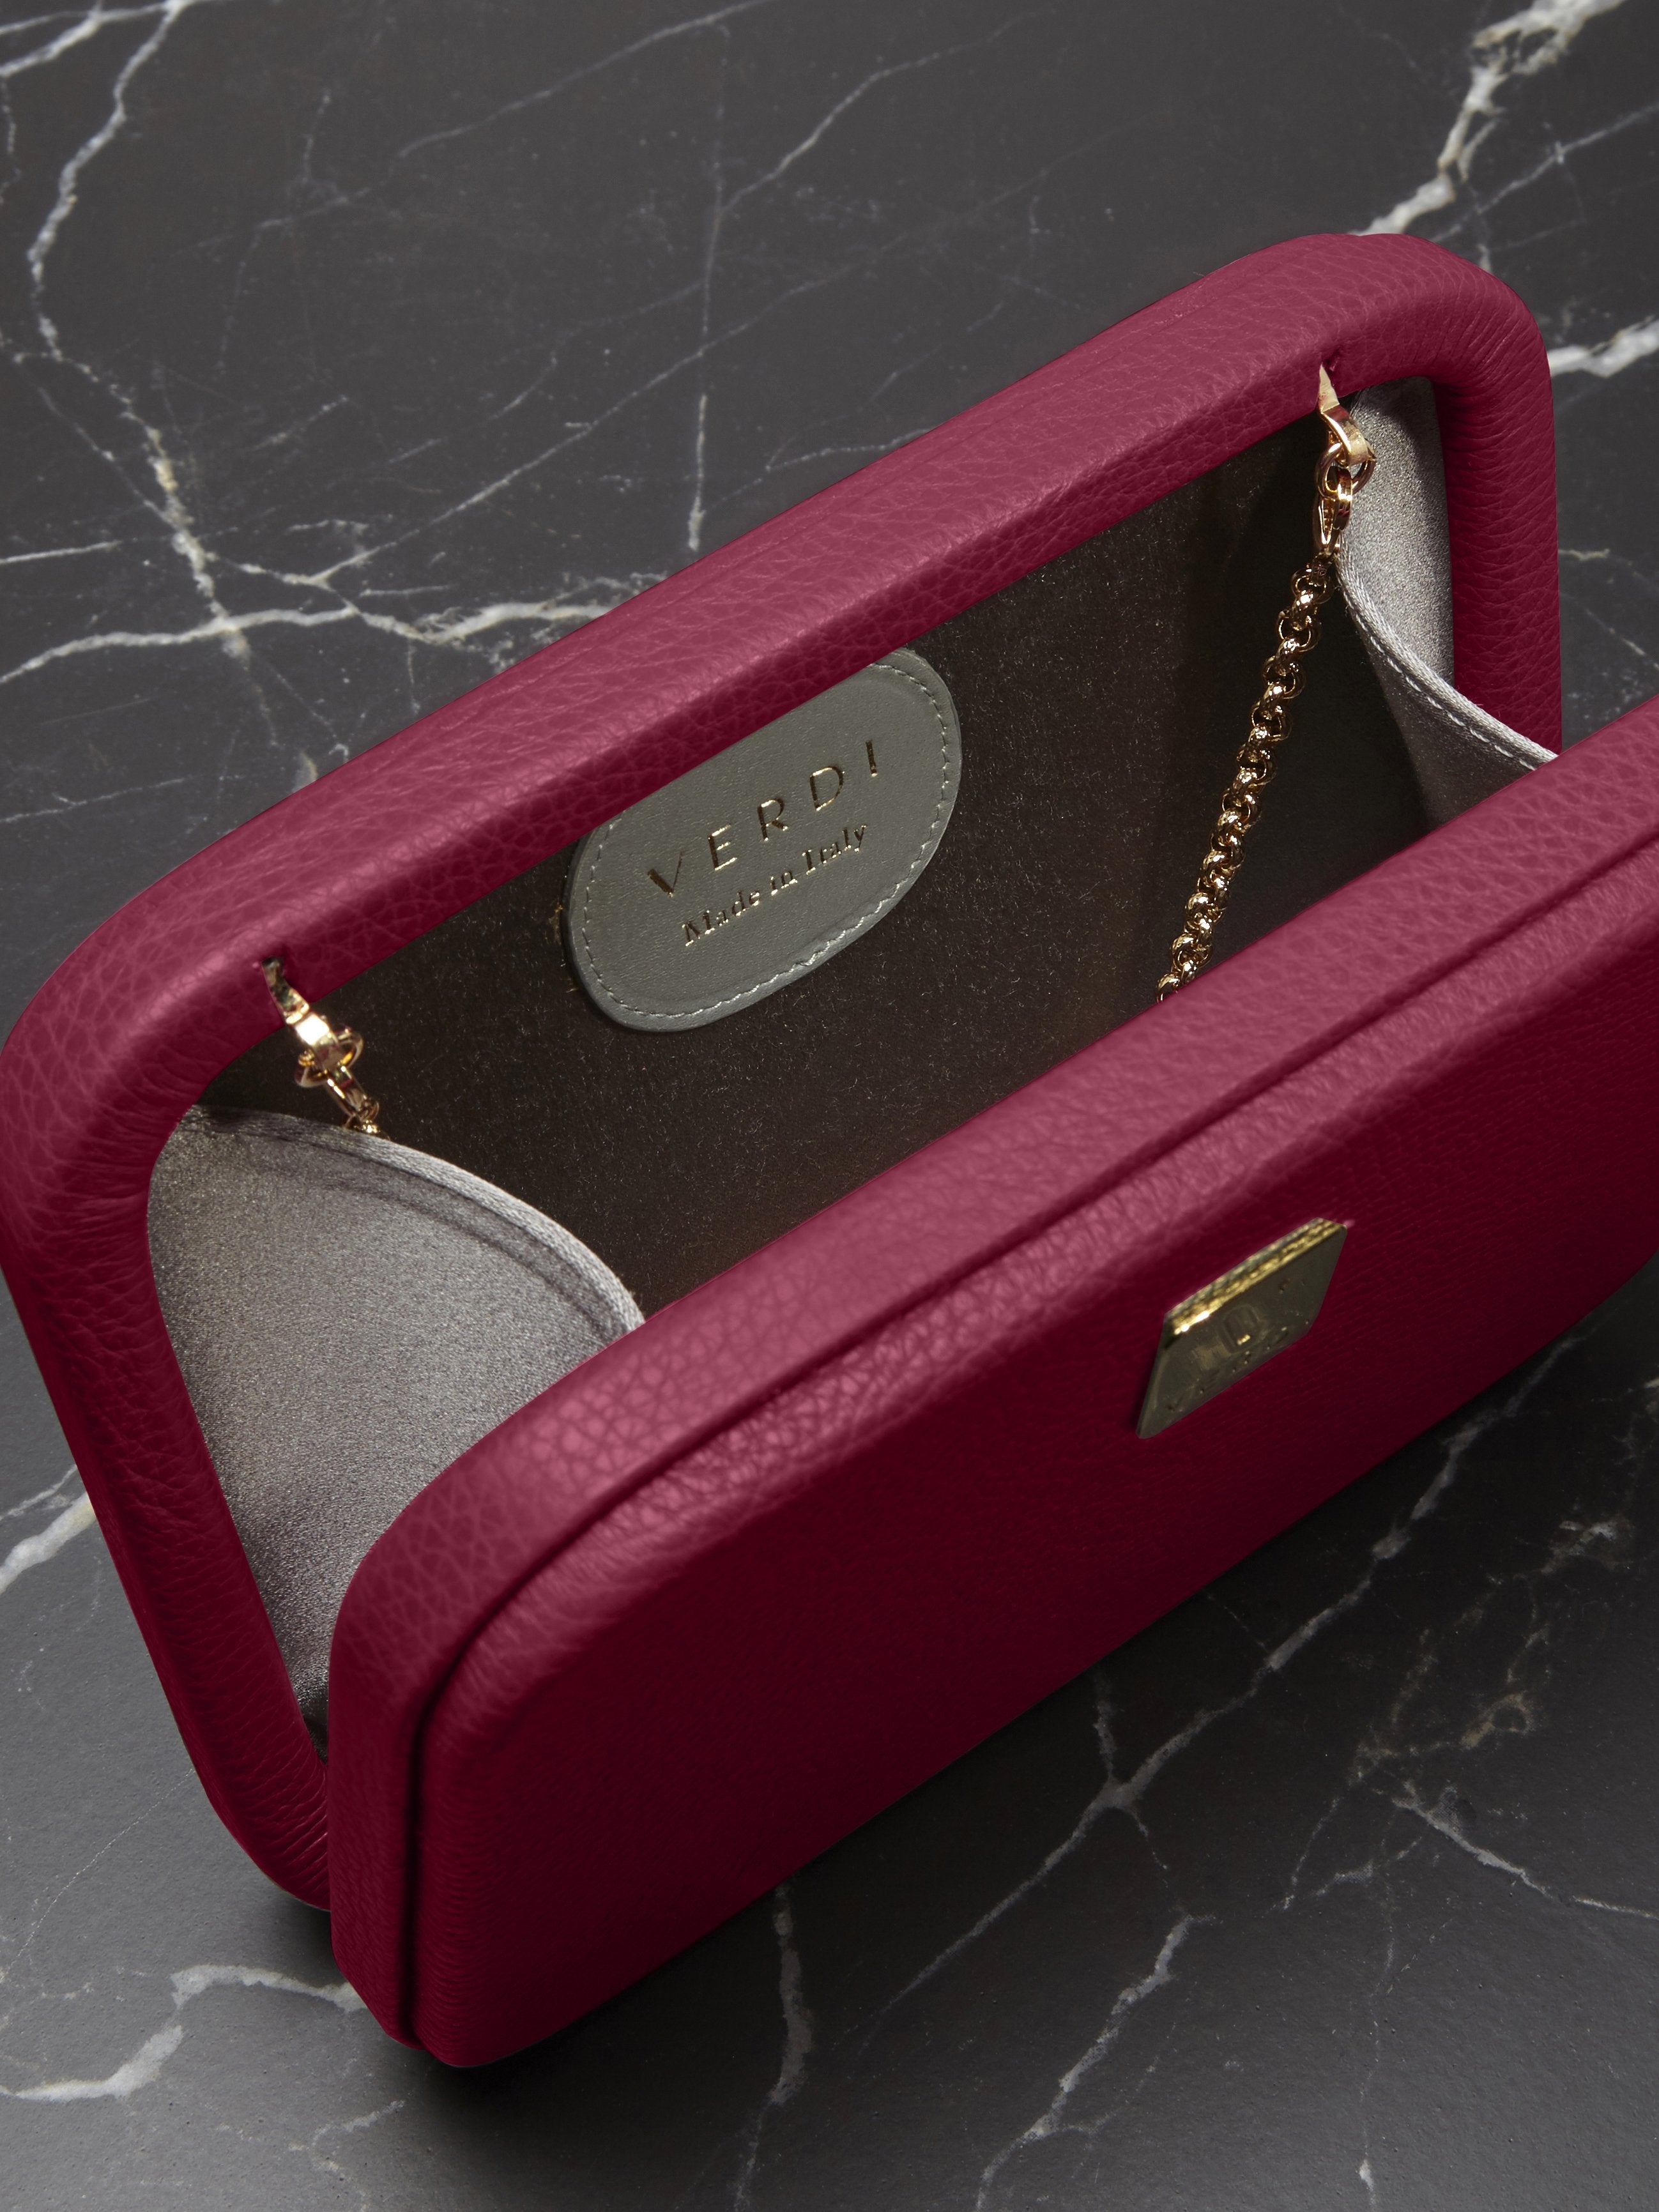 Atelier Verdi pink leather clutch bag, interior